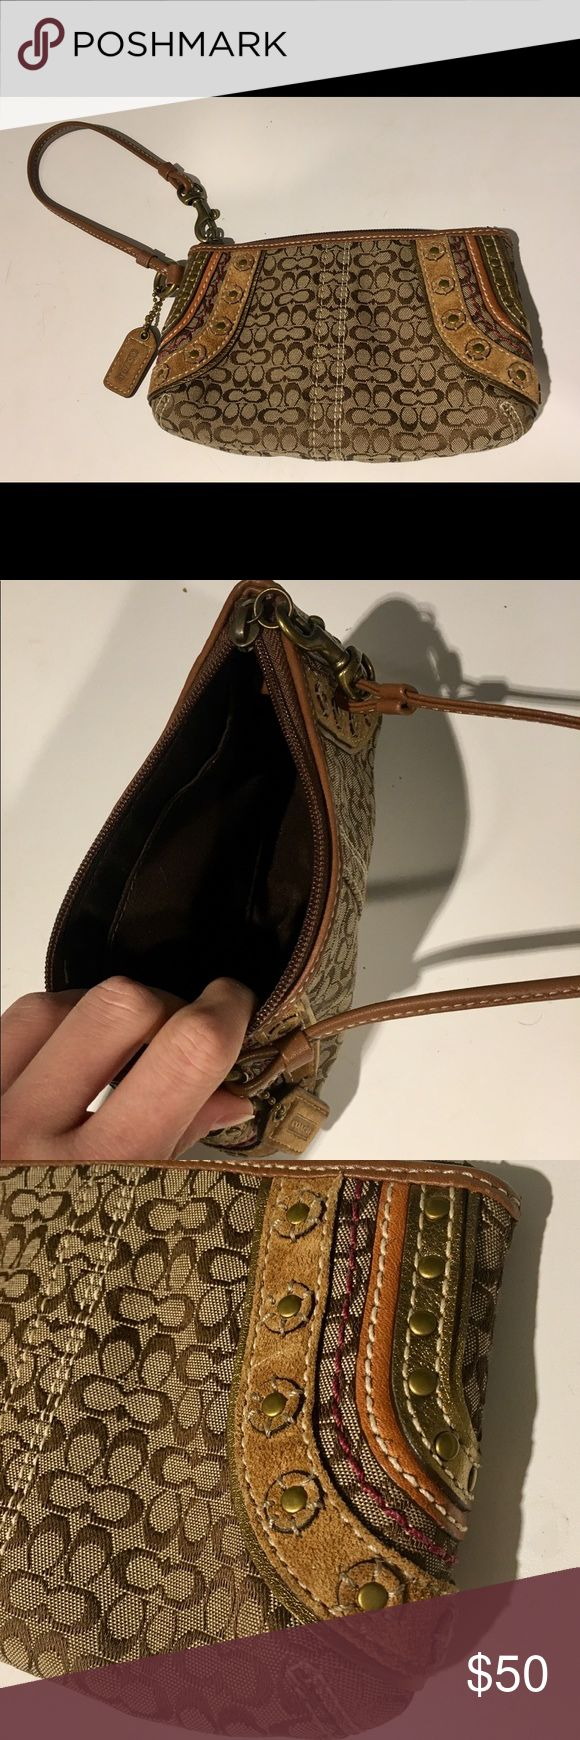 Coach Wristlet Authentic coach Wristlet. Brown fabric with side details including grommets and goals leather. Slightly edgy, perfect amount of detail. Great for a night out! Coach Bags Clutches & Wristlets